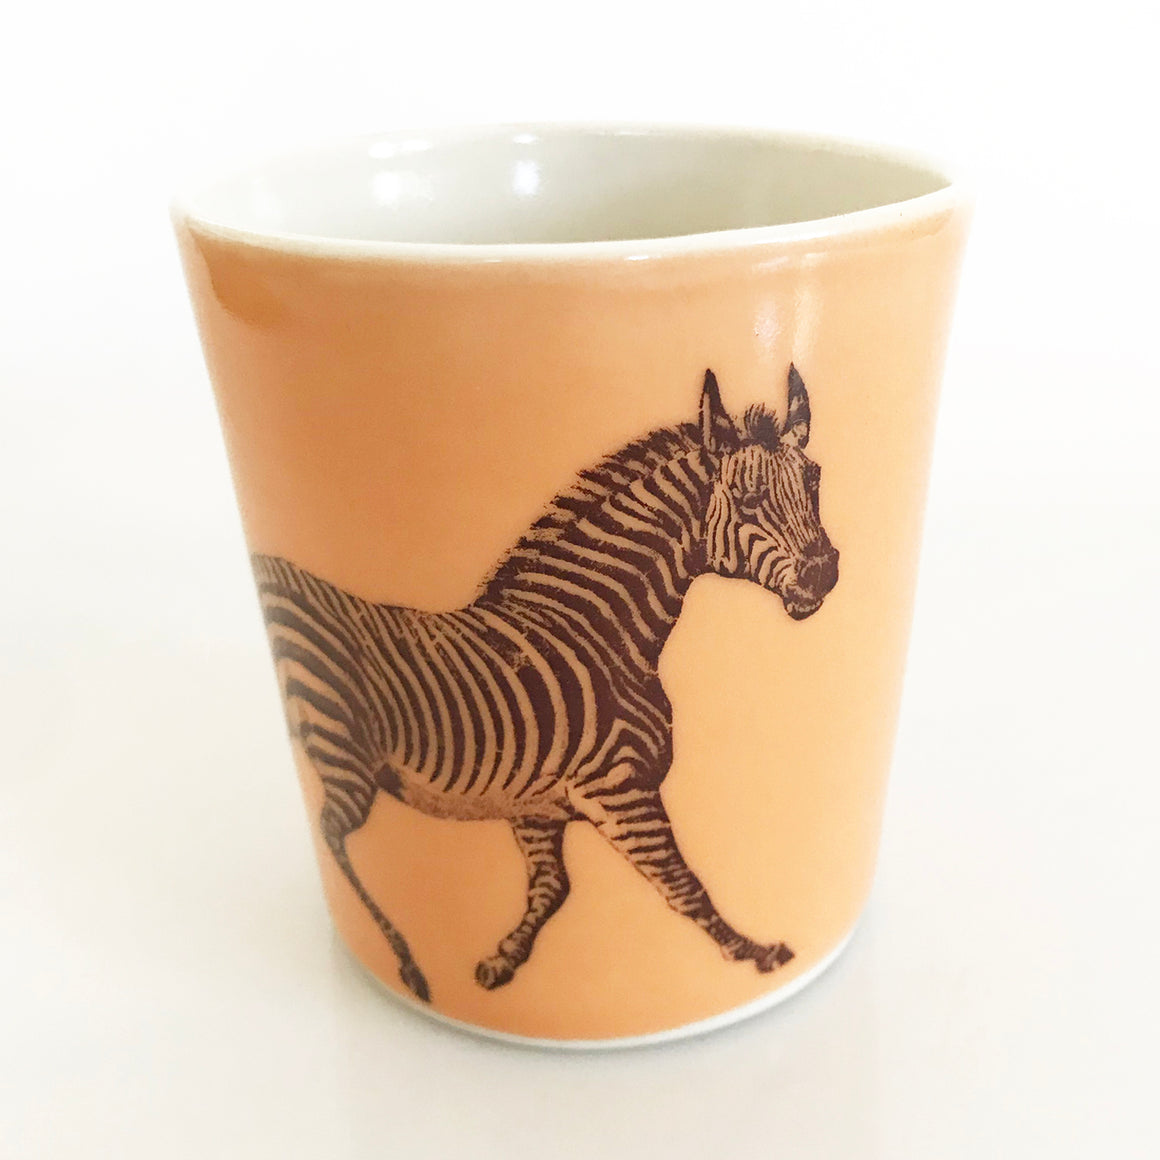 12oz Porcelain Animal Tumbler (Zebra) - KESTREL